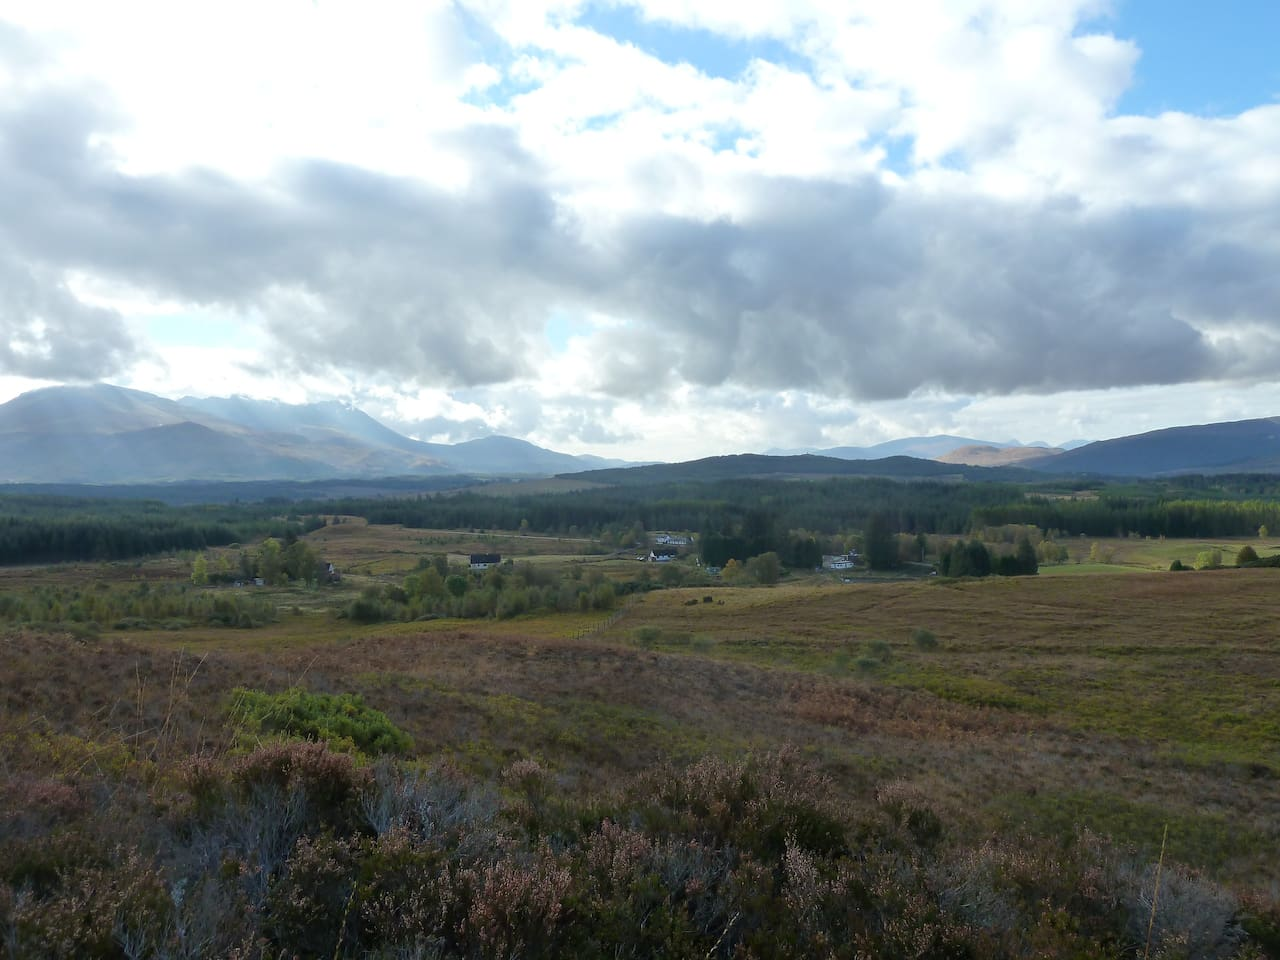 Crofting community of Stronaba. You can see the But'n'Bens and in the distance, Ben Nevis.